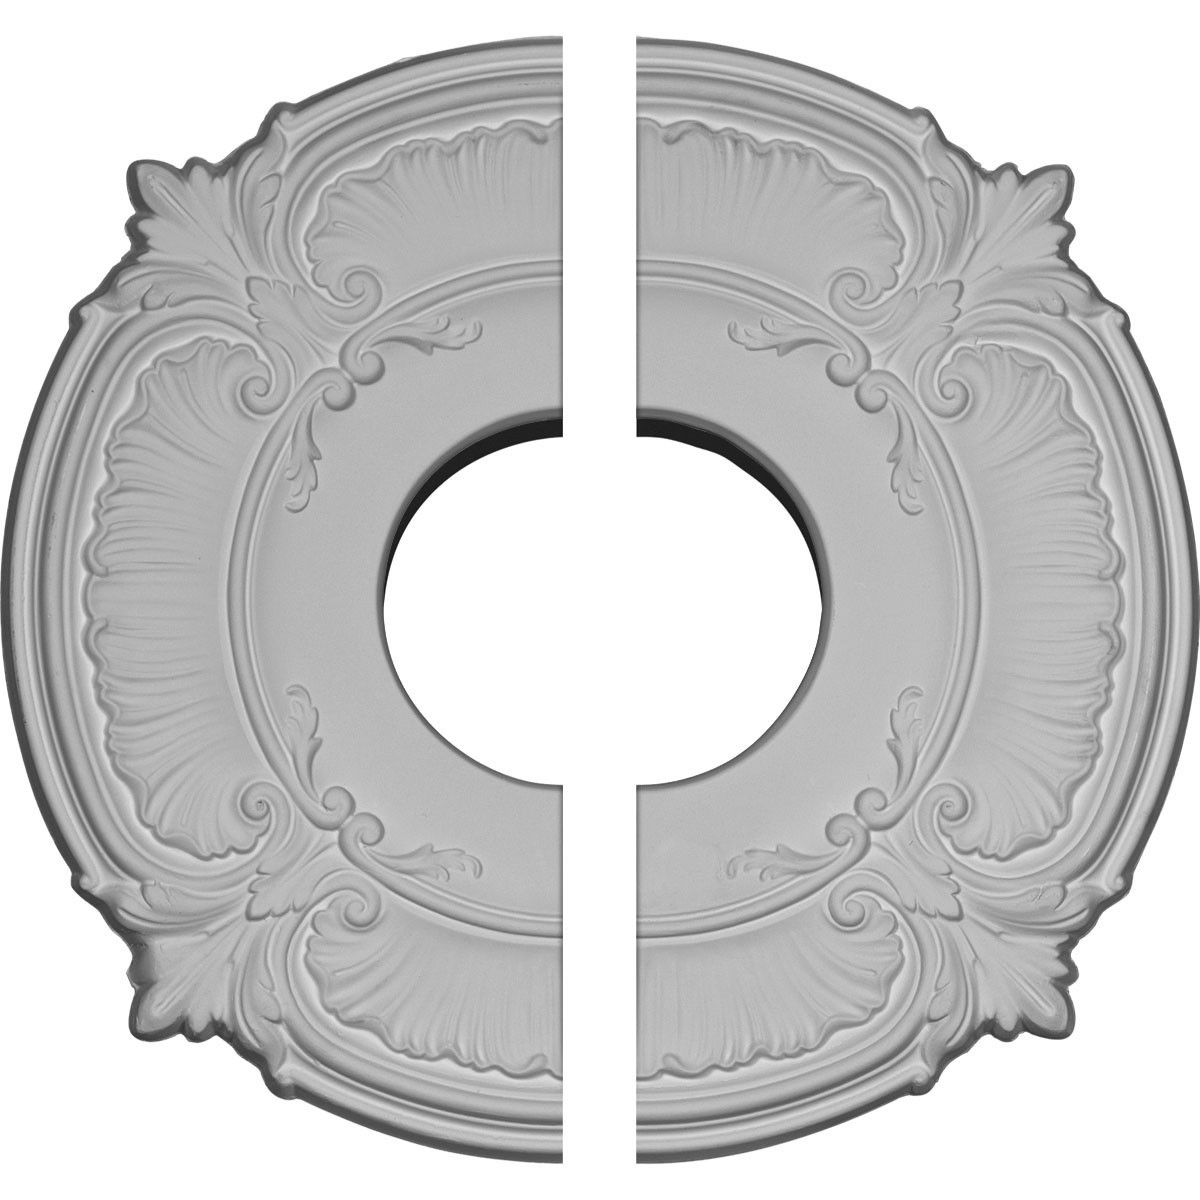 """EM-CM12AT2 - 12 3/4""""OD x 3 1/2""""ID x 1/2""""P Attica Ceiling Medallion, Two Piece (Fits Canopies up to 3 1/2"""")"""